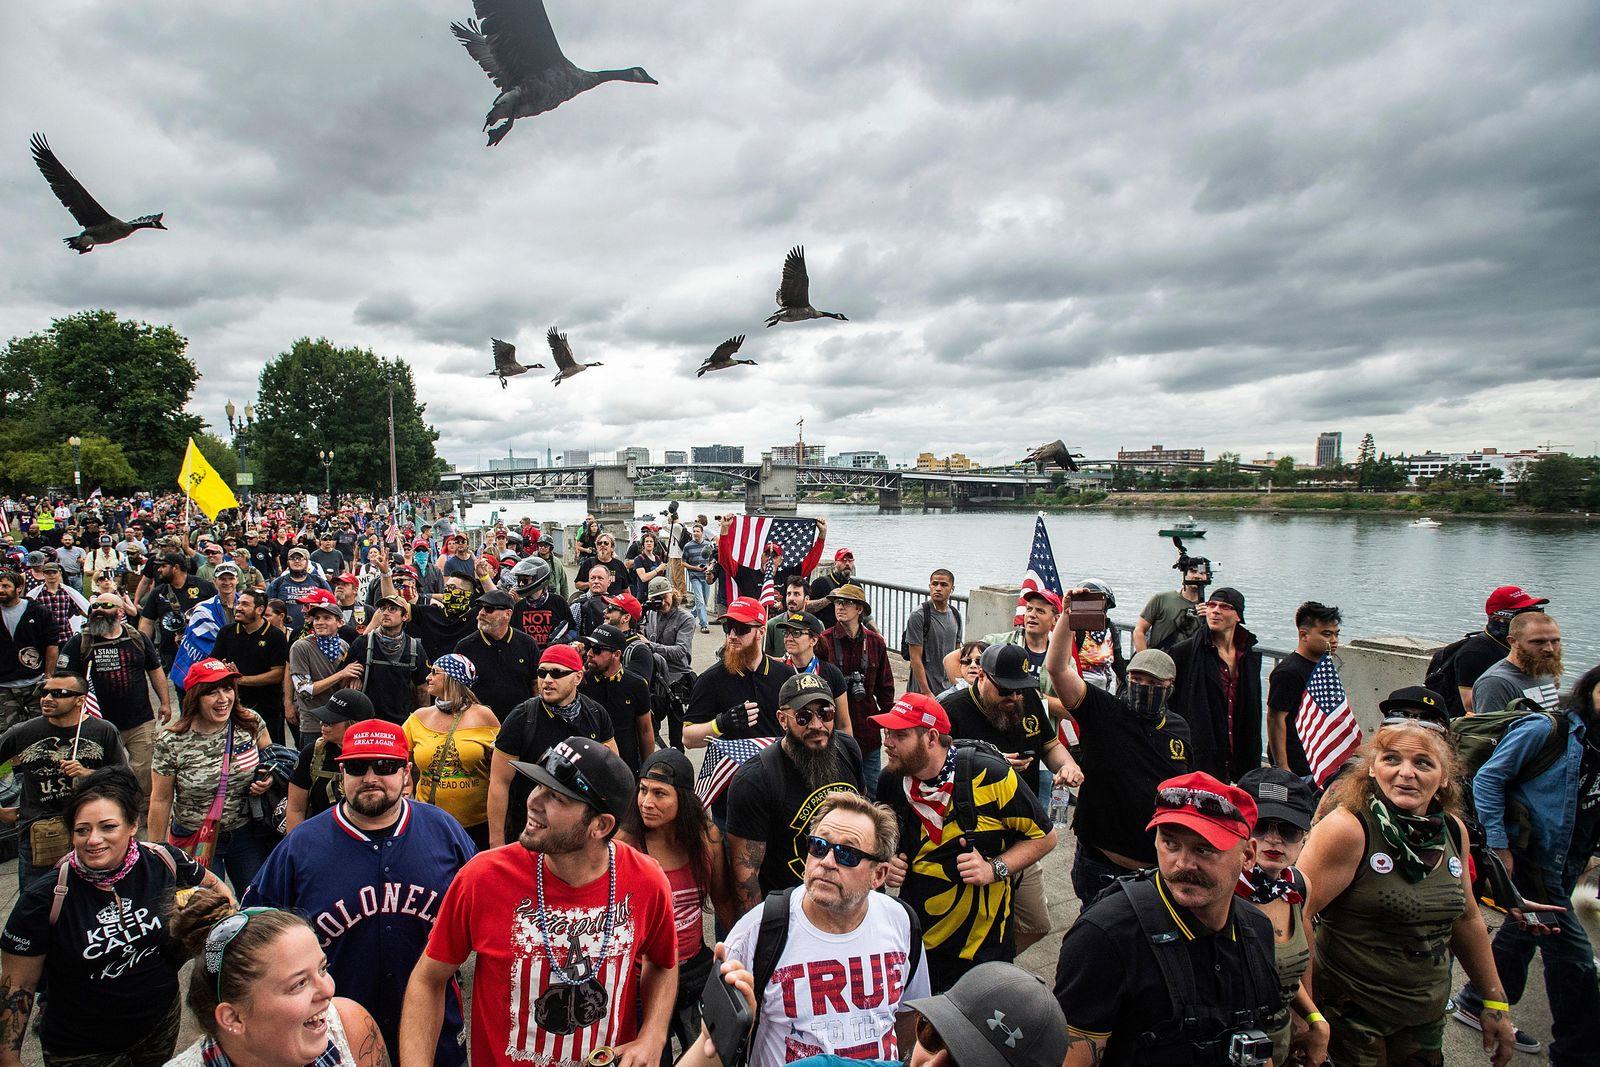 "Members of the Proud Boys and other right-wing demonstrators march along the Willamette River during an ""End Domestic Terrorism"" rally in Portland, Ore., on Saturday, Aug. 17, 2019. Police have mobilized to prevent clashes between conservative groups and counter-protesters who converged on the city. (AP Photo/Noah Berger)"